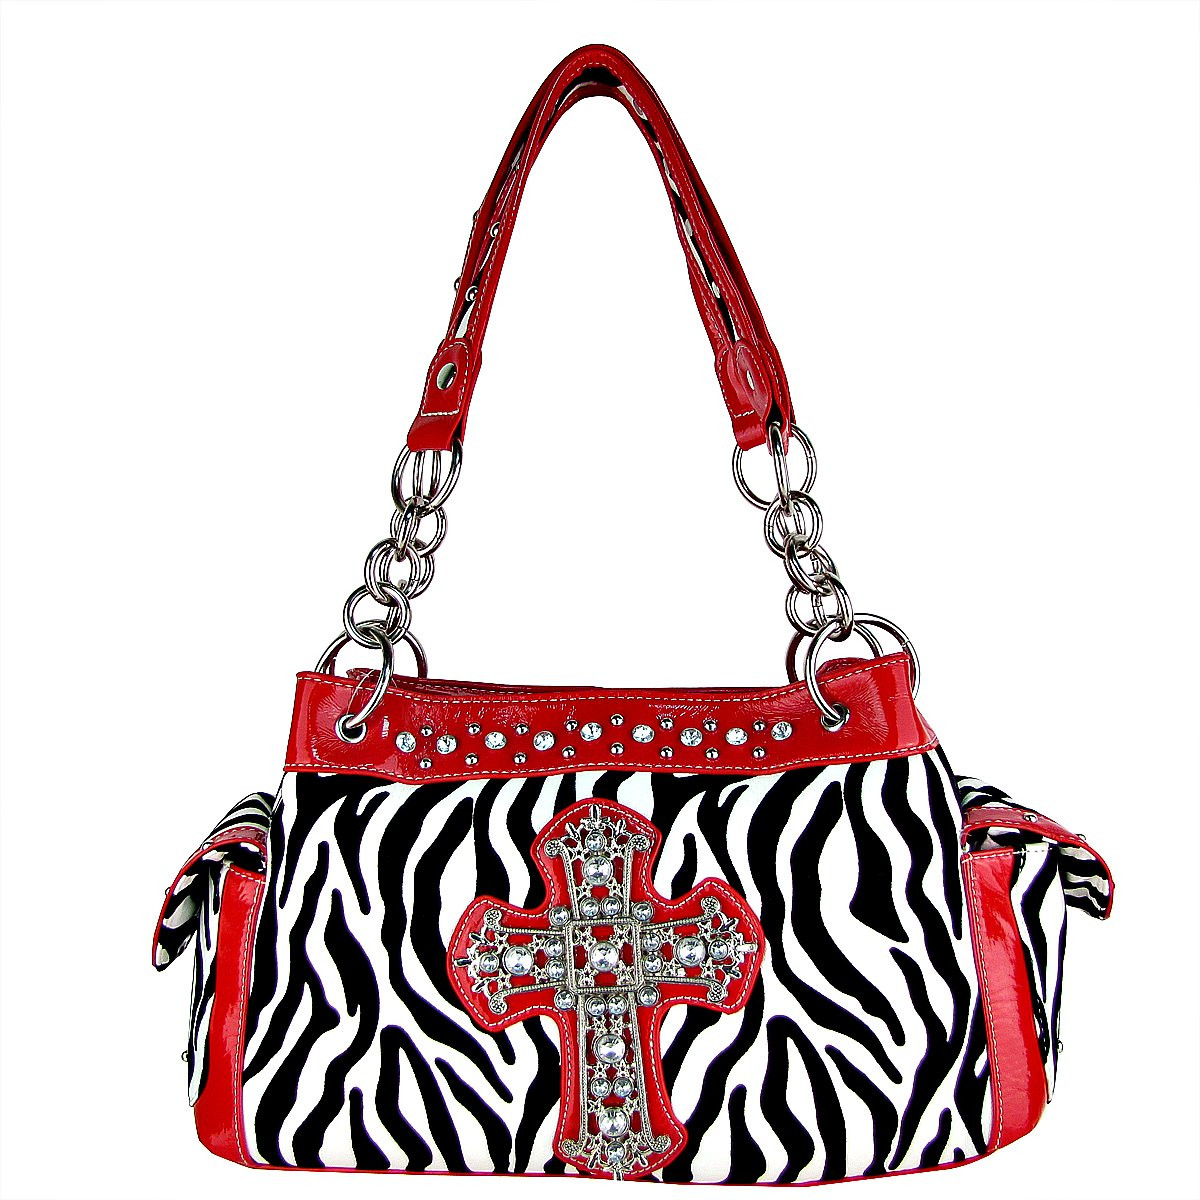 RED ZEBRA PRINT CROSS SHOULDER HANDBAG HB1-98001RED